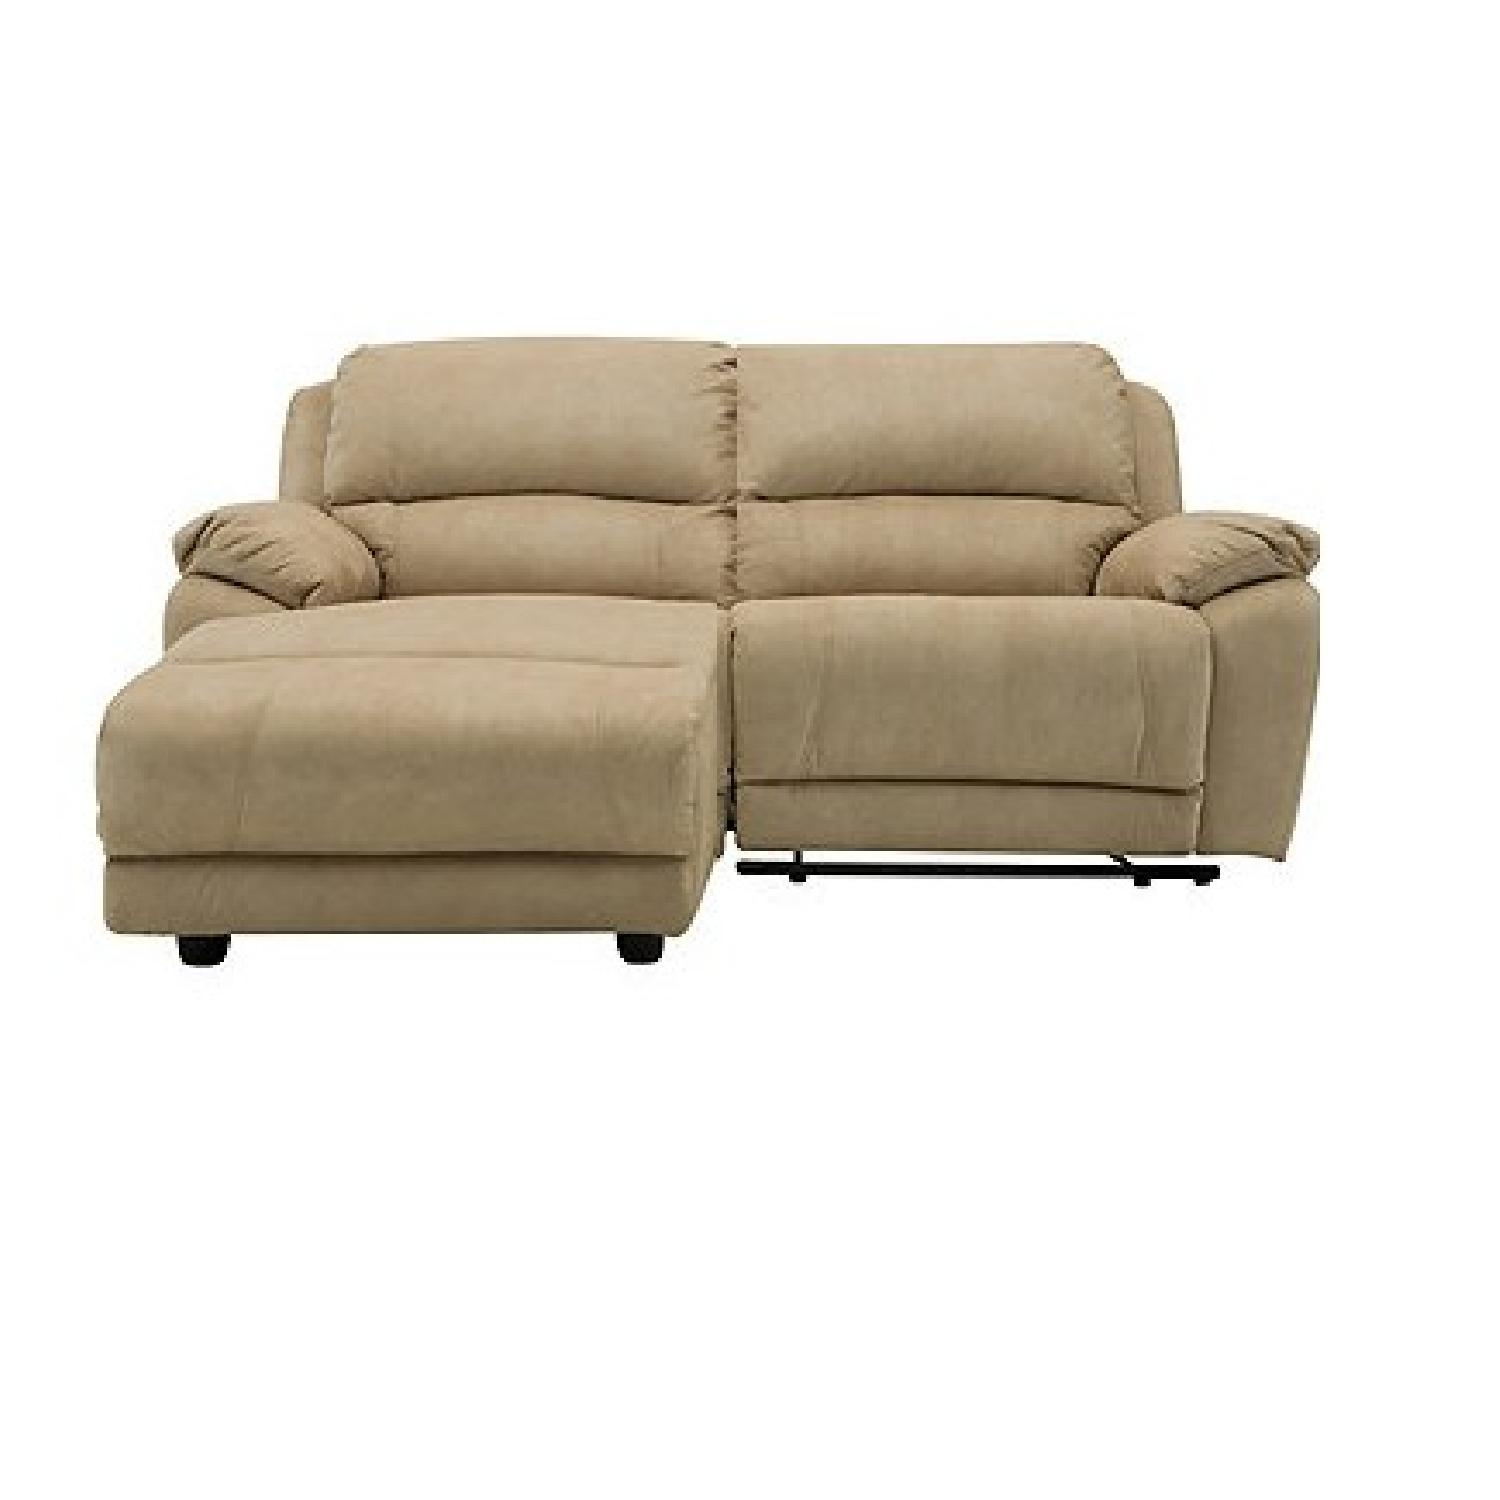 Raymour Flanigan Mackenzie 2 Piece Sectional Sofa AptDeco